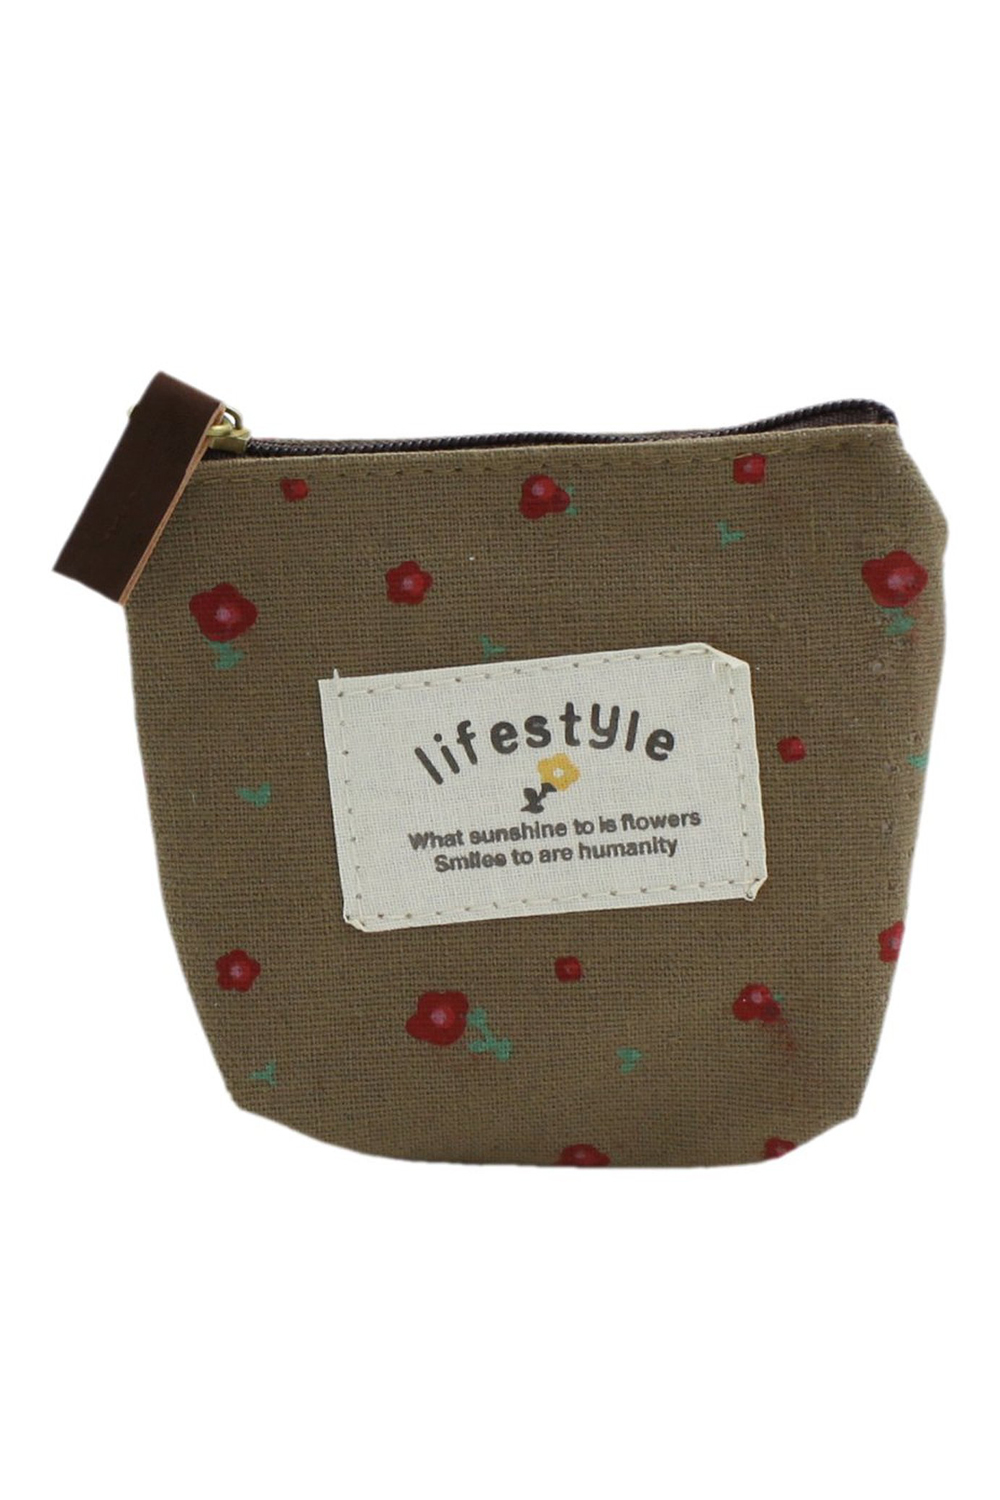 Lady Small Canvas Purse Wallet Coin